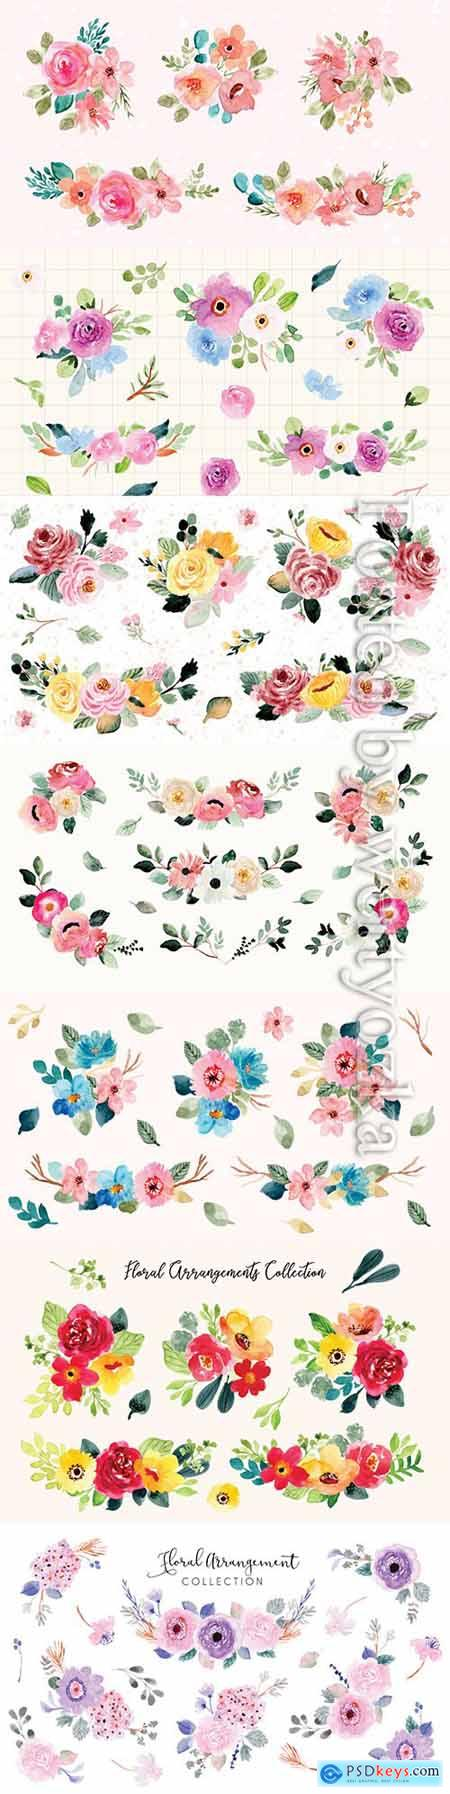 Pretty flower arrangement watercolor collection